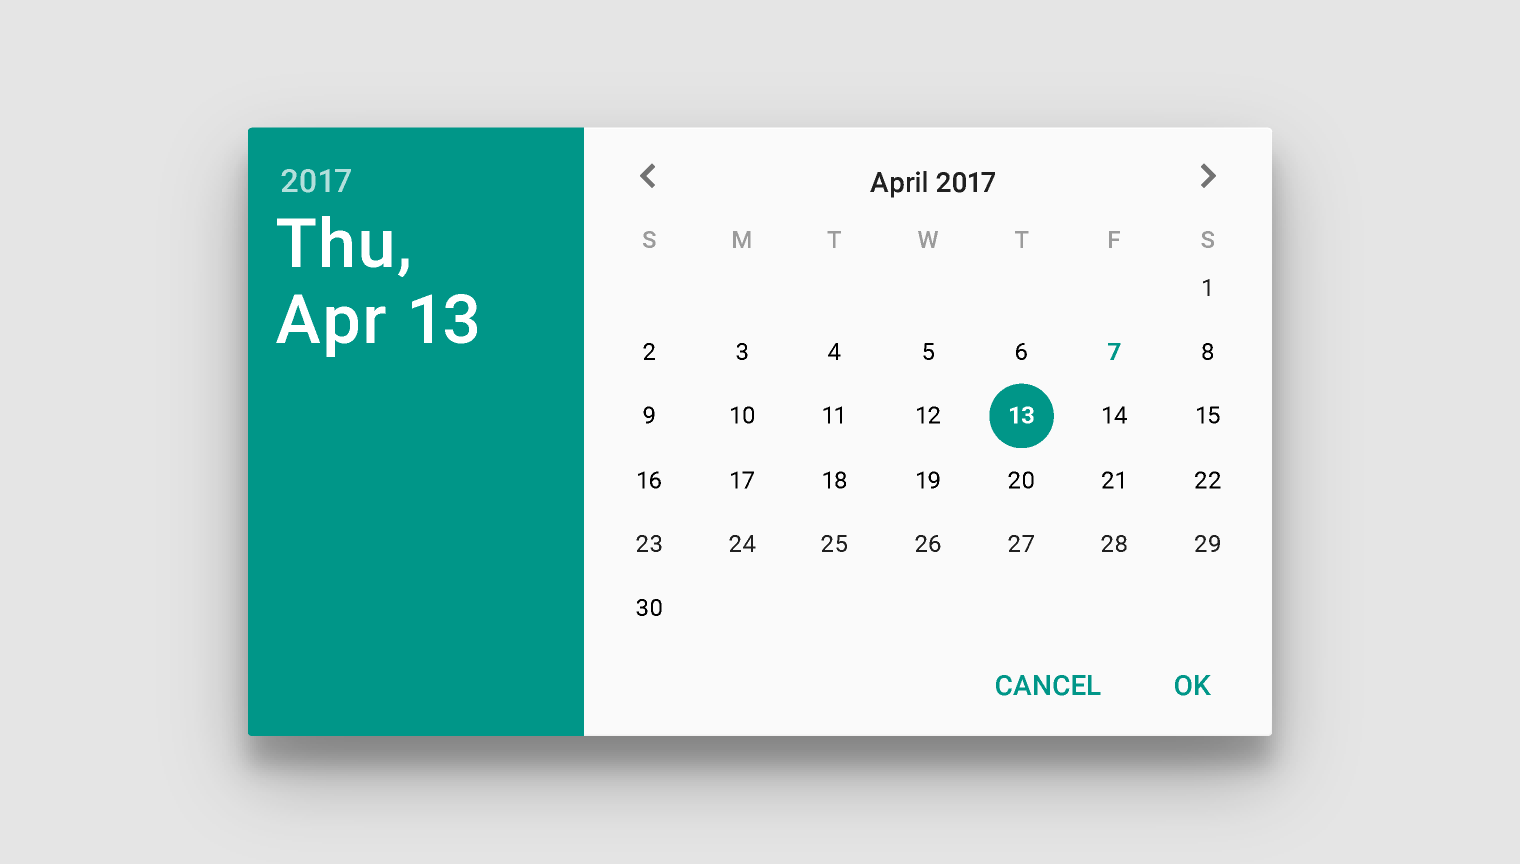 Calendar Design Html : Pickers components material design